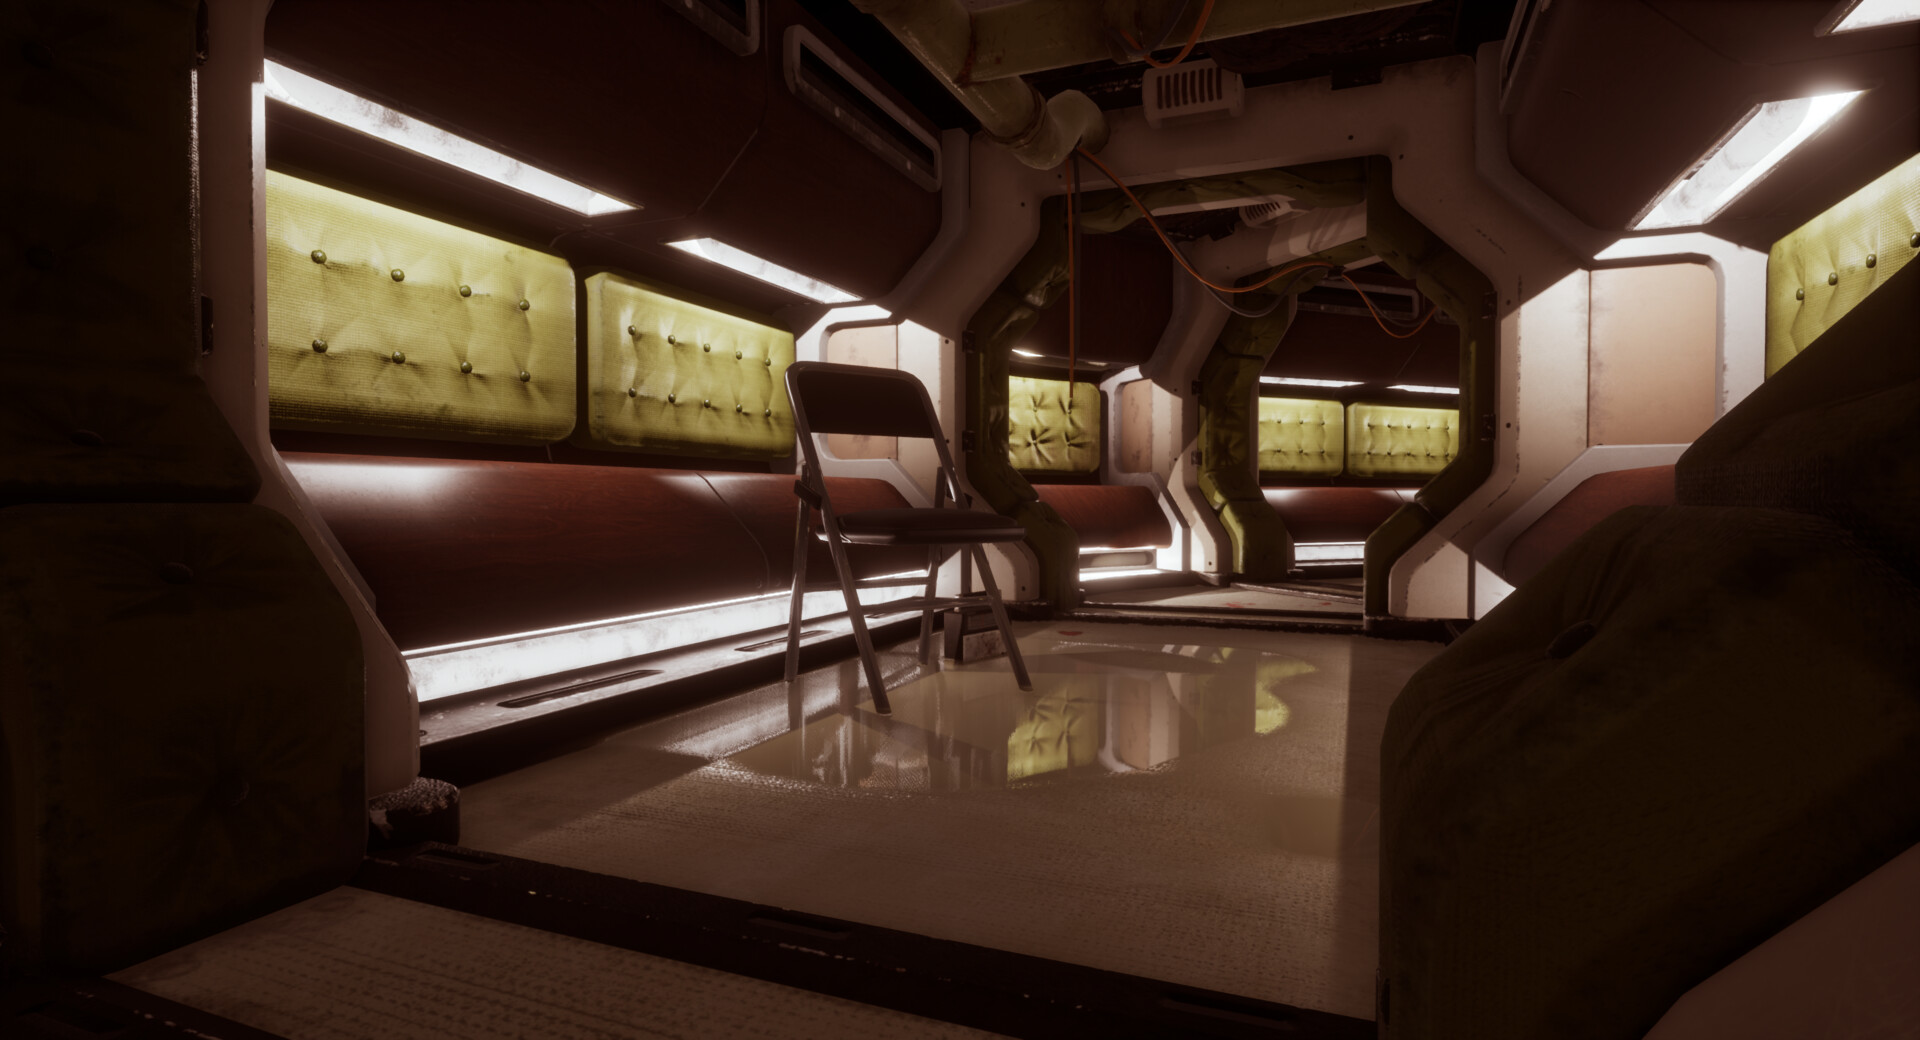 For me, corridors are the sci-fi element you have to nail to give your whole creation a unique identity.